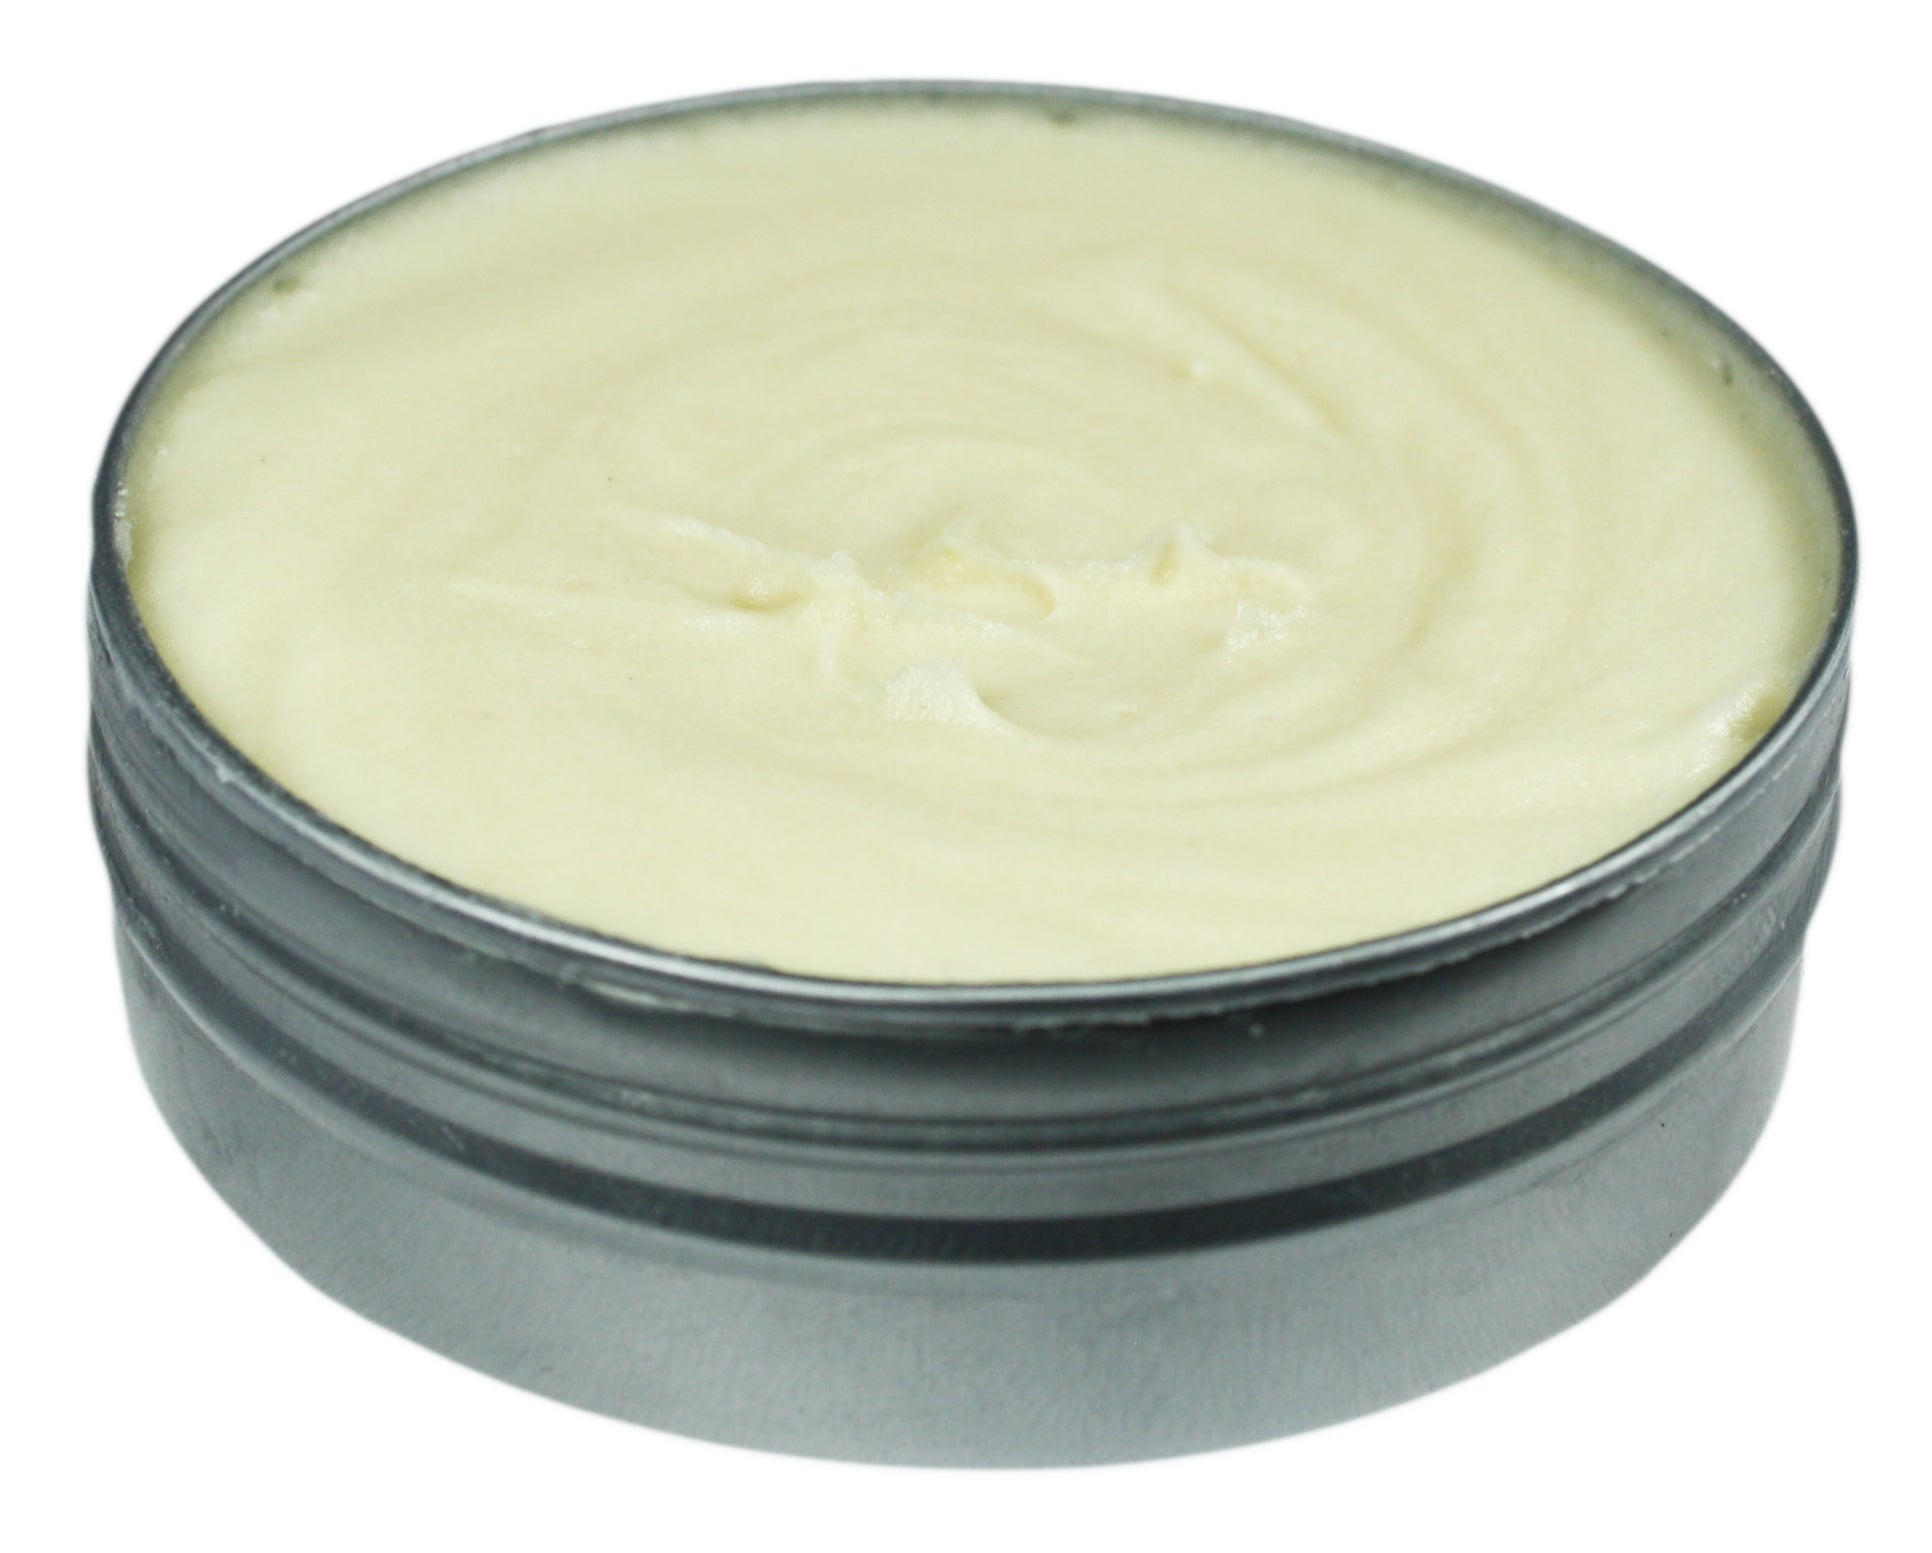 CBD Max Relief Shea Butter Salve 3,000mg - Shop CBD Organics